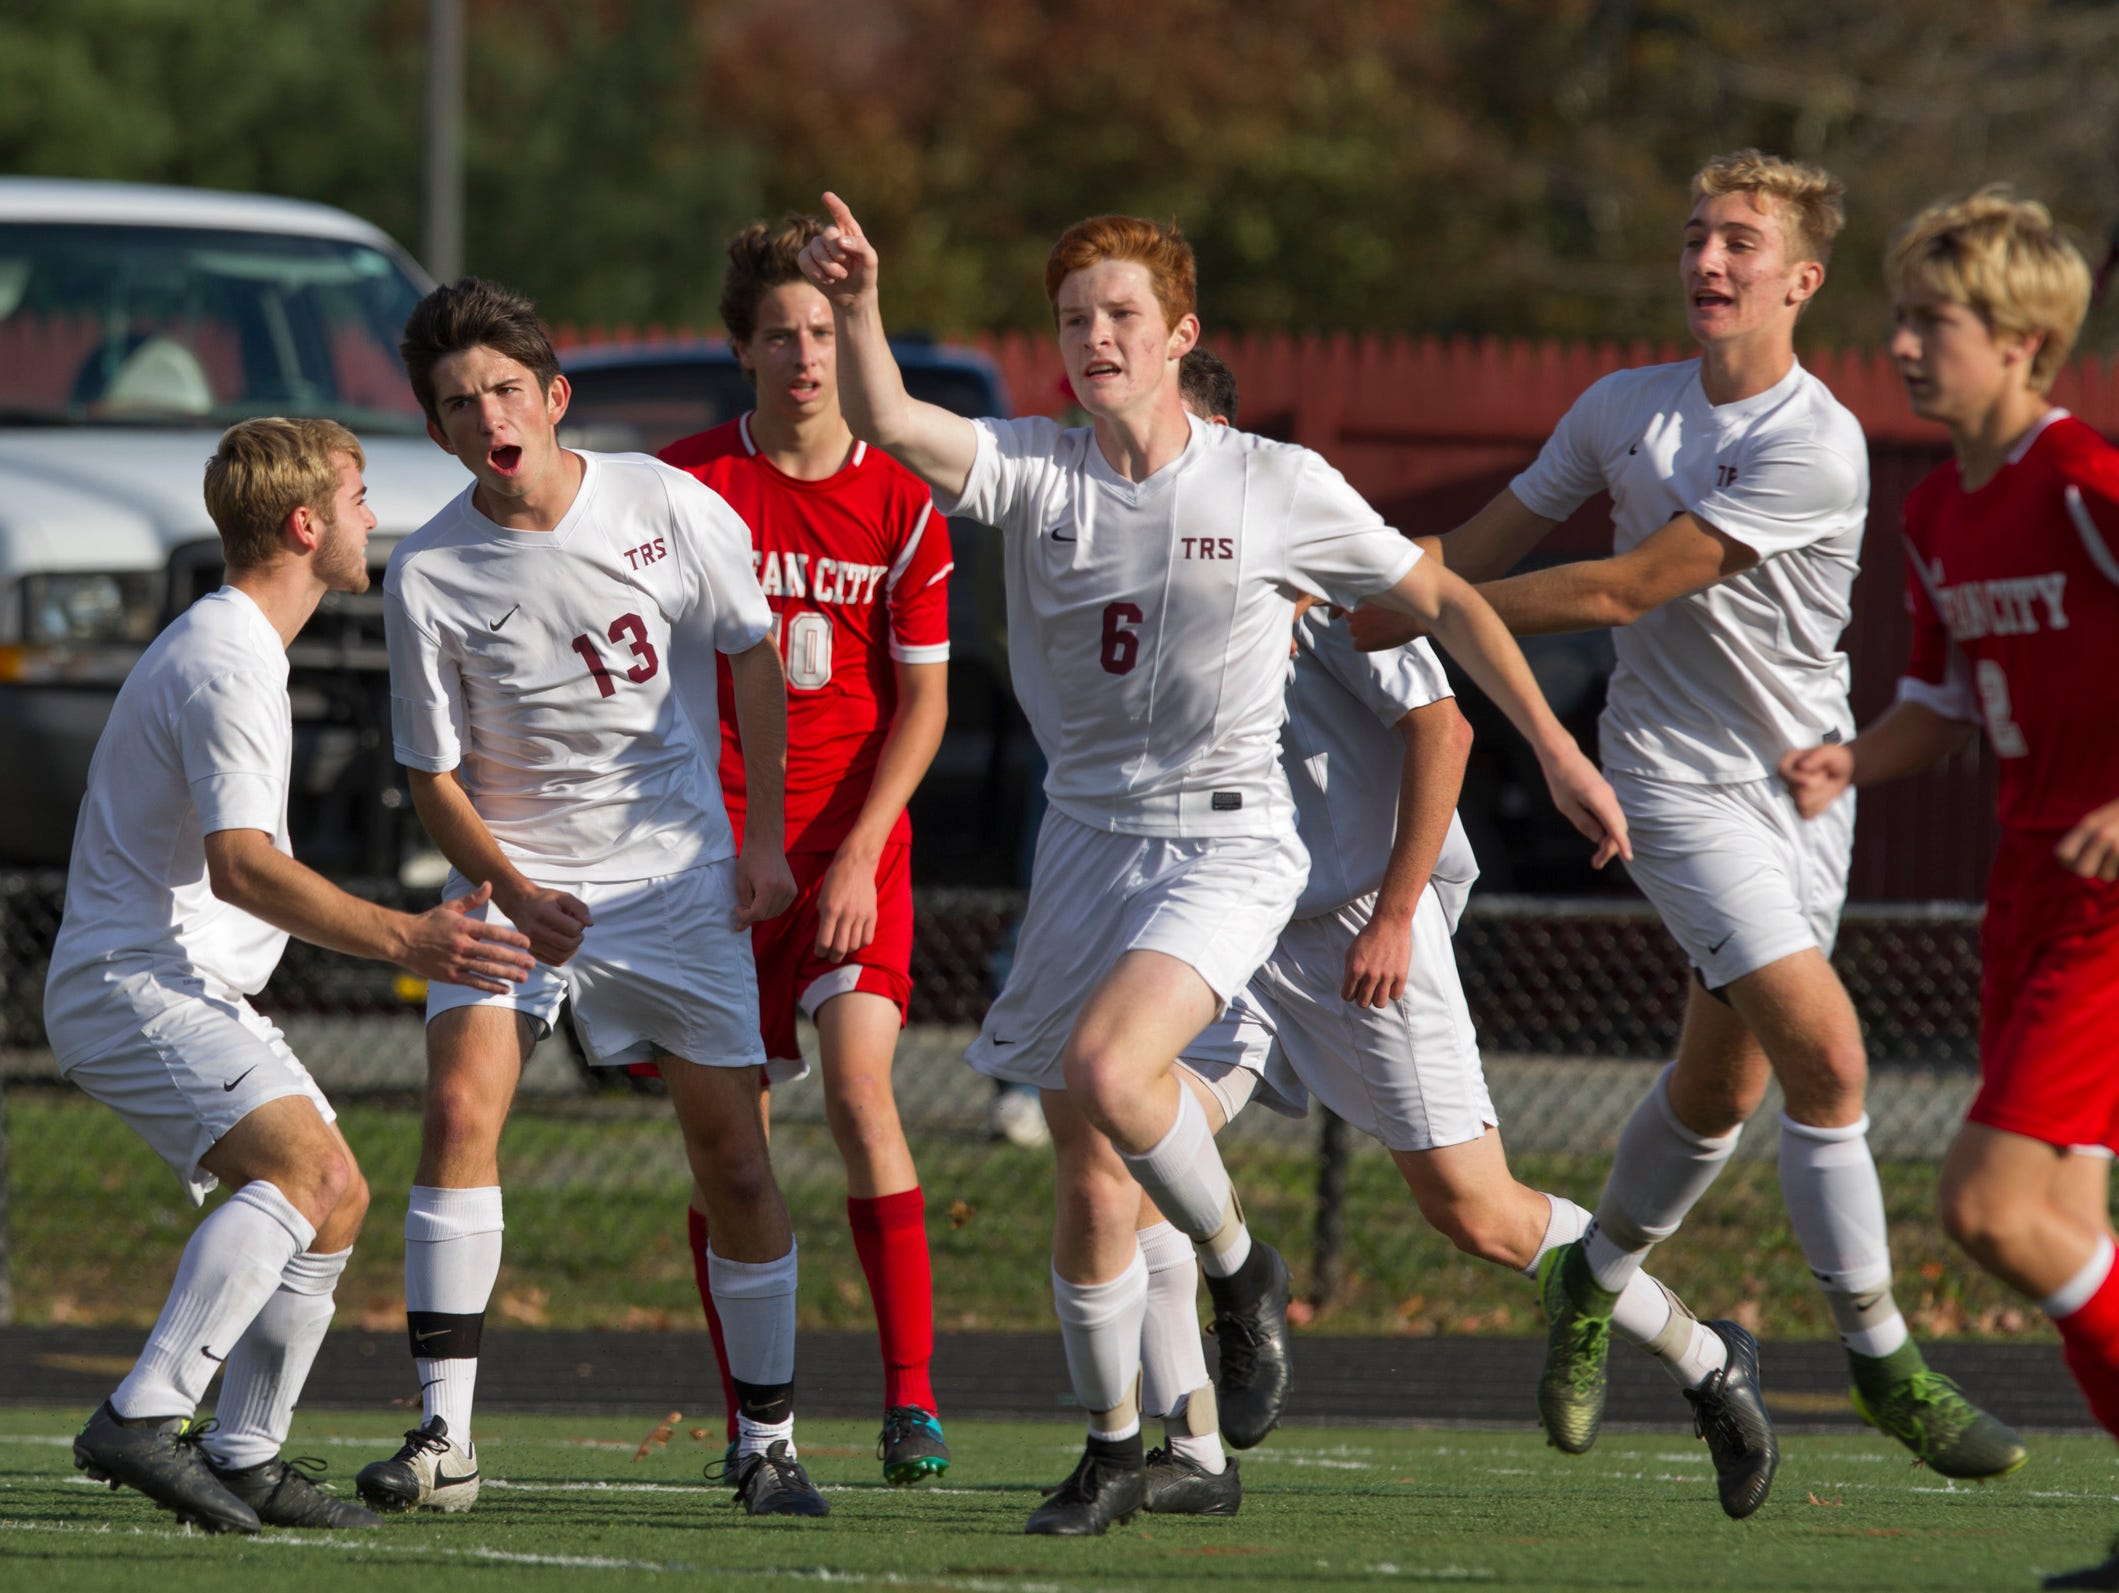 Toms River South's Cameron Geerinck salutes the audience as he celebrates with teammates one of his two first half goals. Toms River South vs Ocean City in NJSIAA Boys Group Soccer Final on November 13, 2015